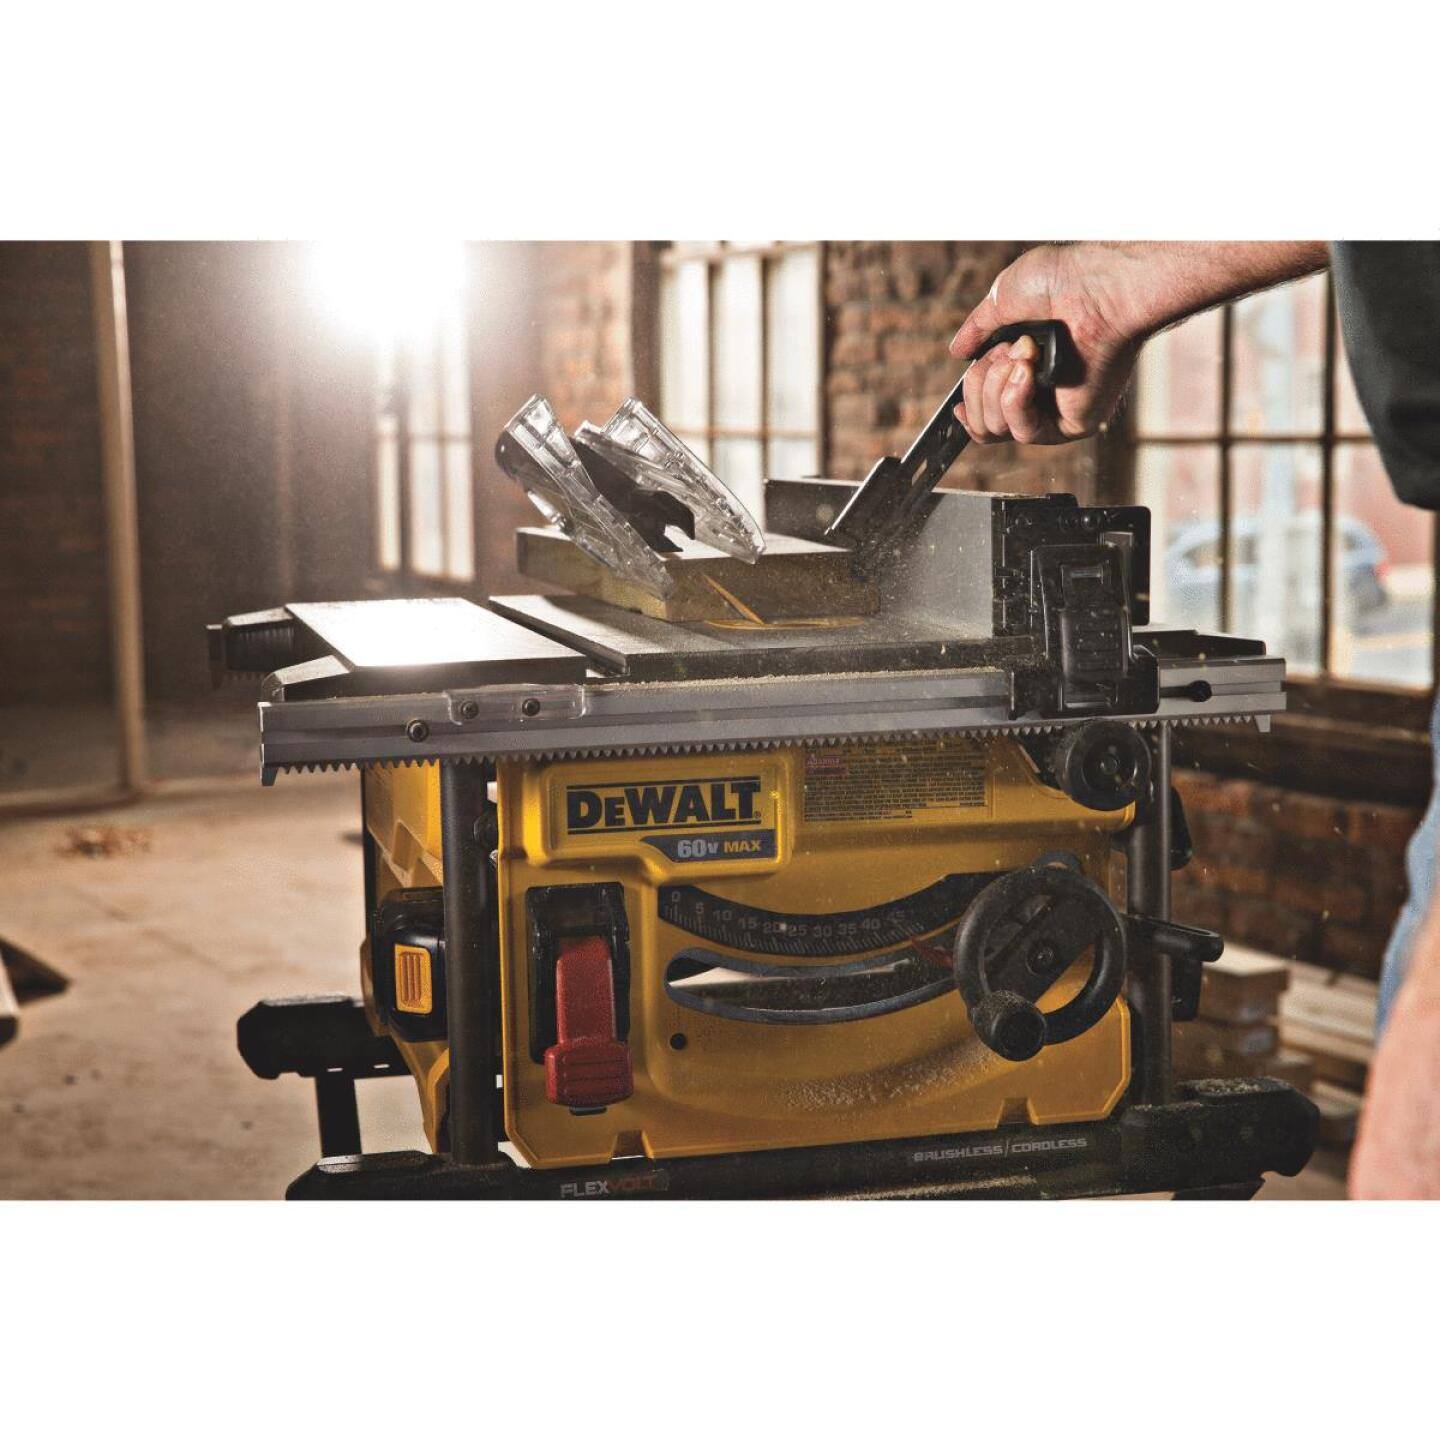 DeWalt Flexvolt 60-Volt MAX Lithium-Ion Brushless 8-1/4 In. Cordless Table Saw Kit Image 3